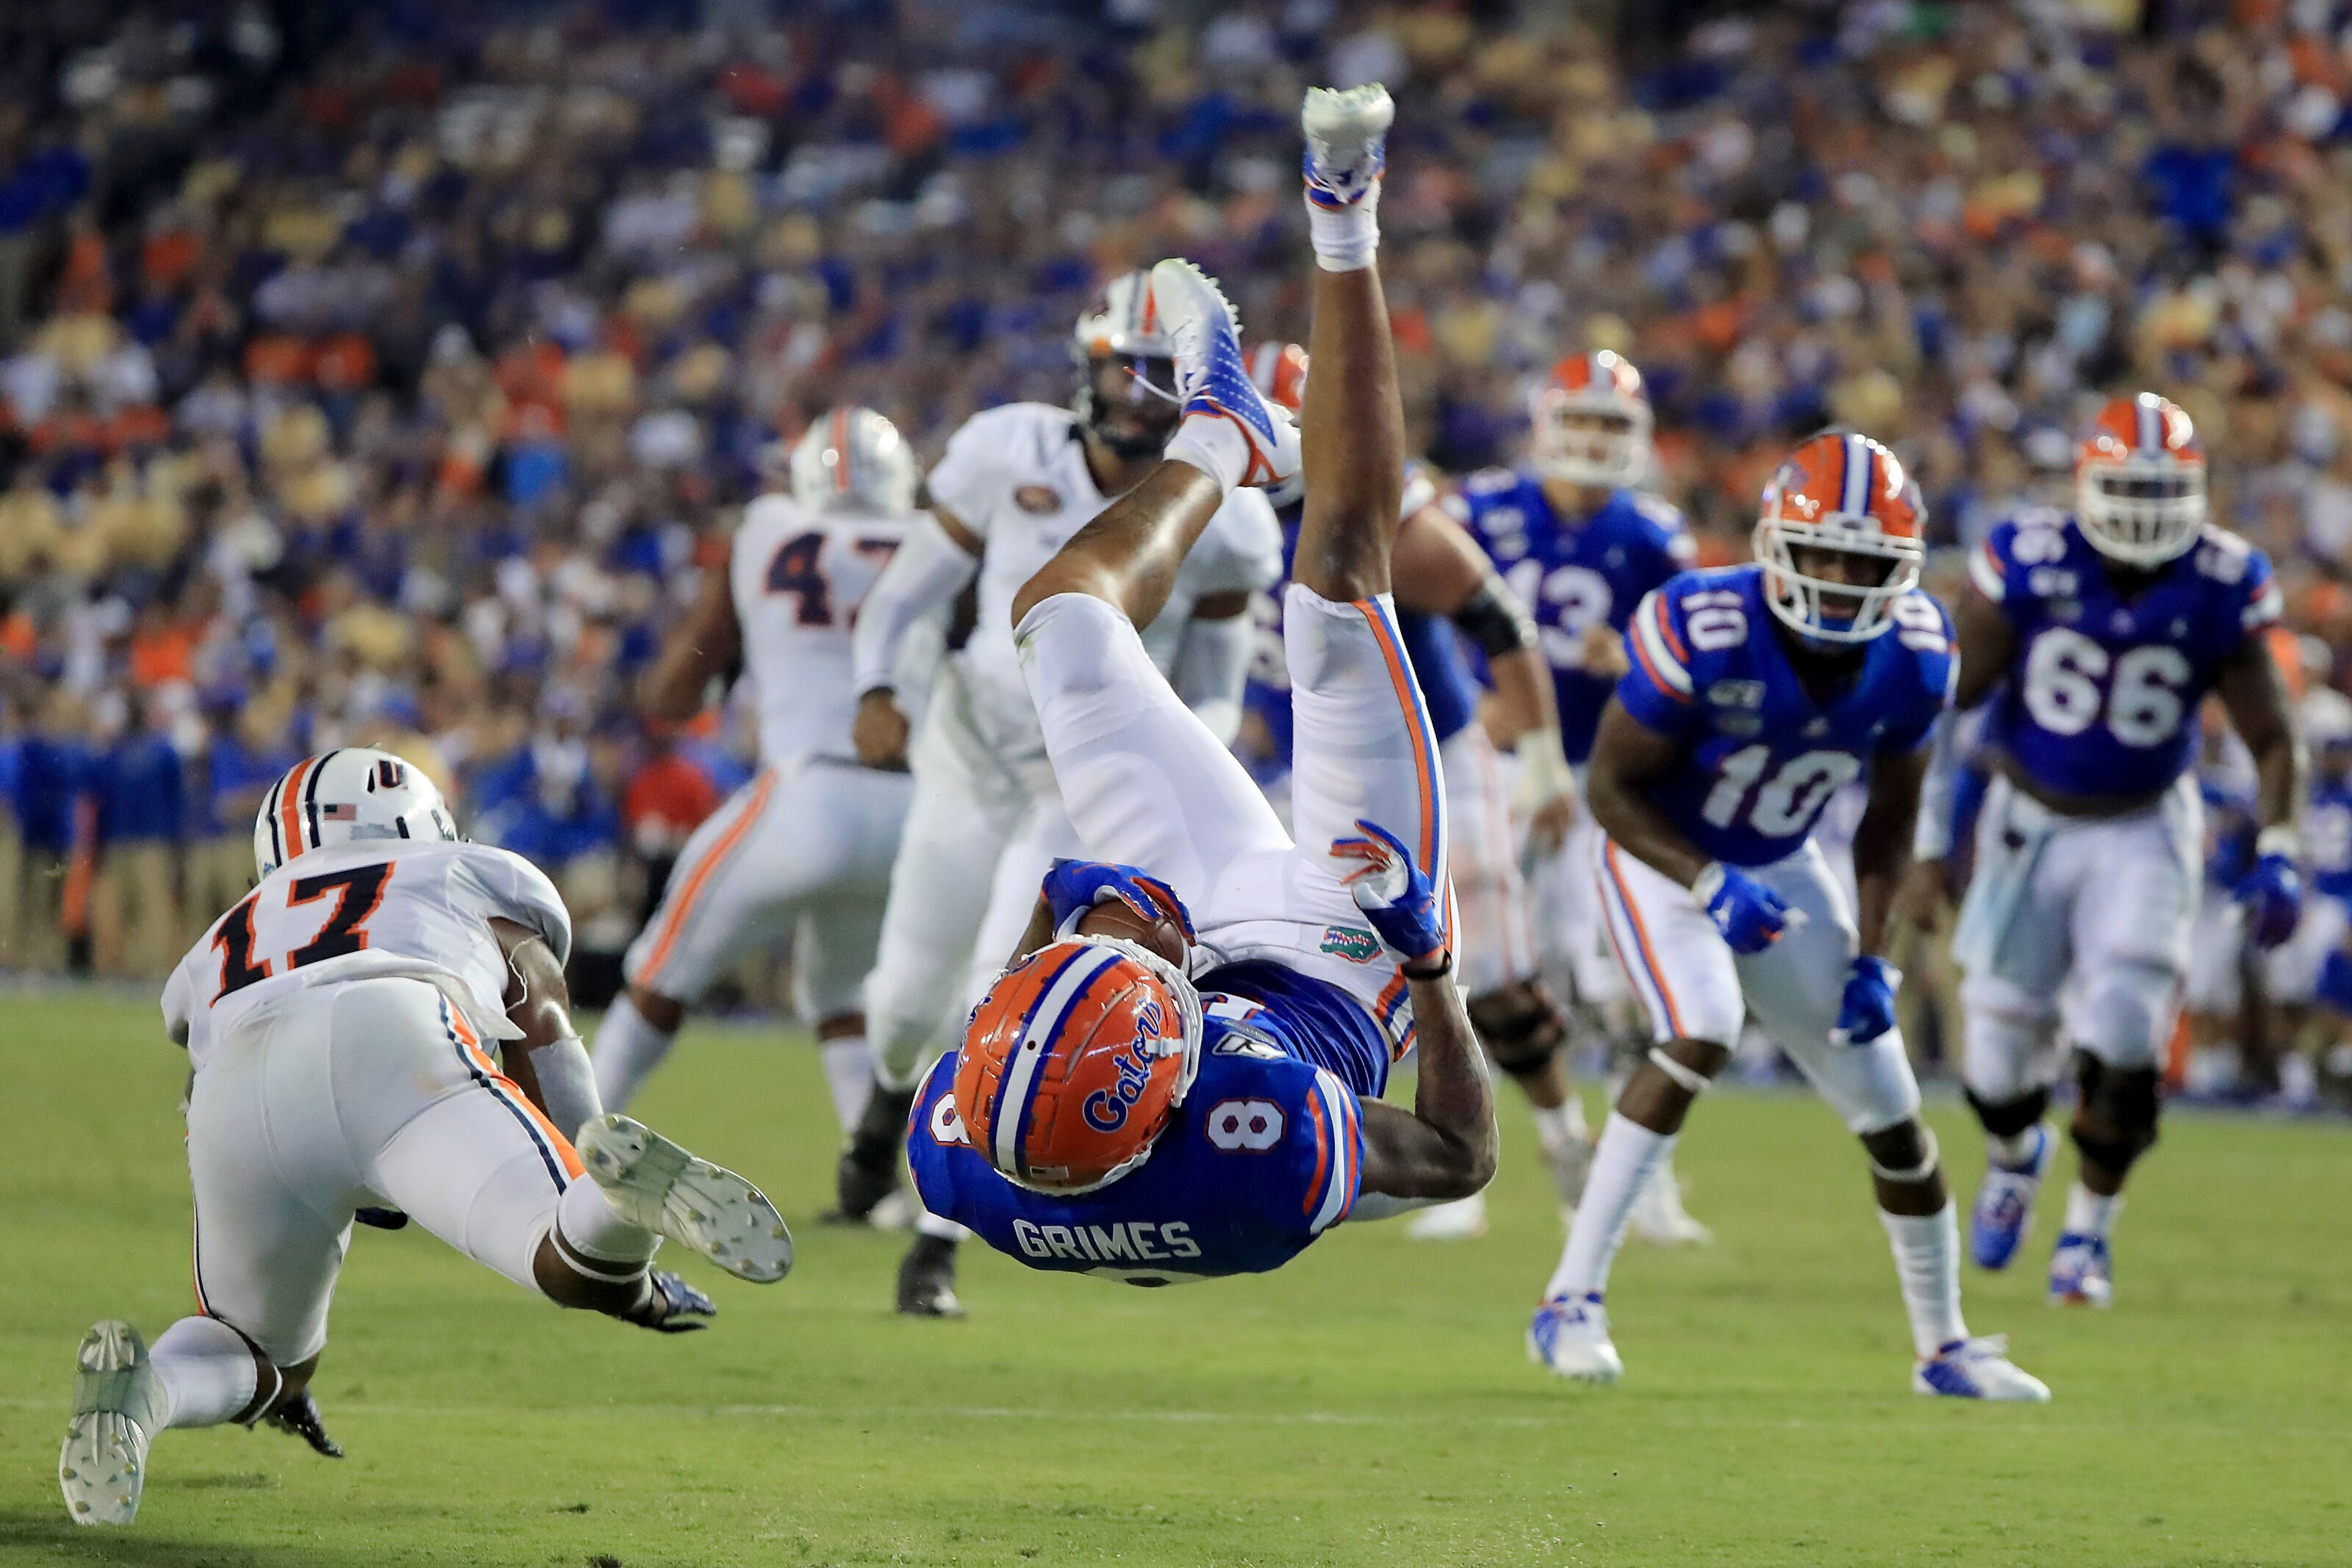 Florida football: Injury report for the Gators against Kentucky